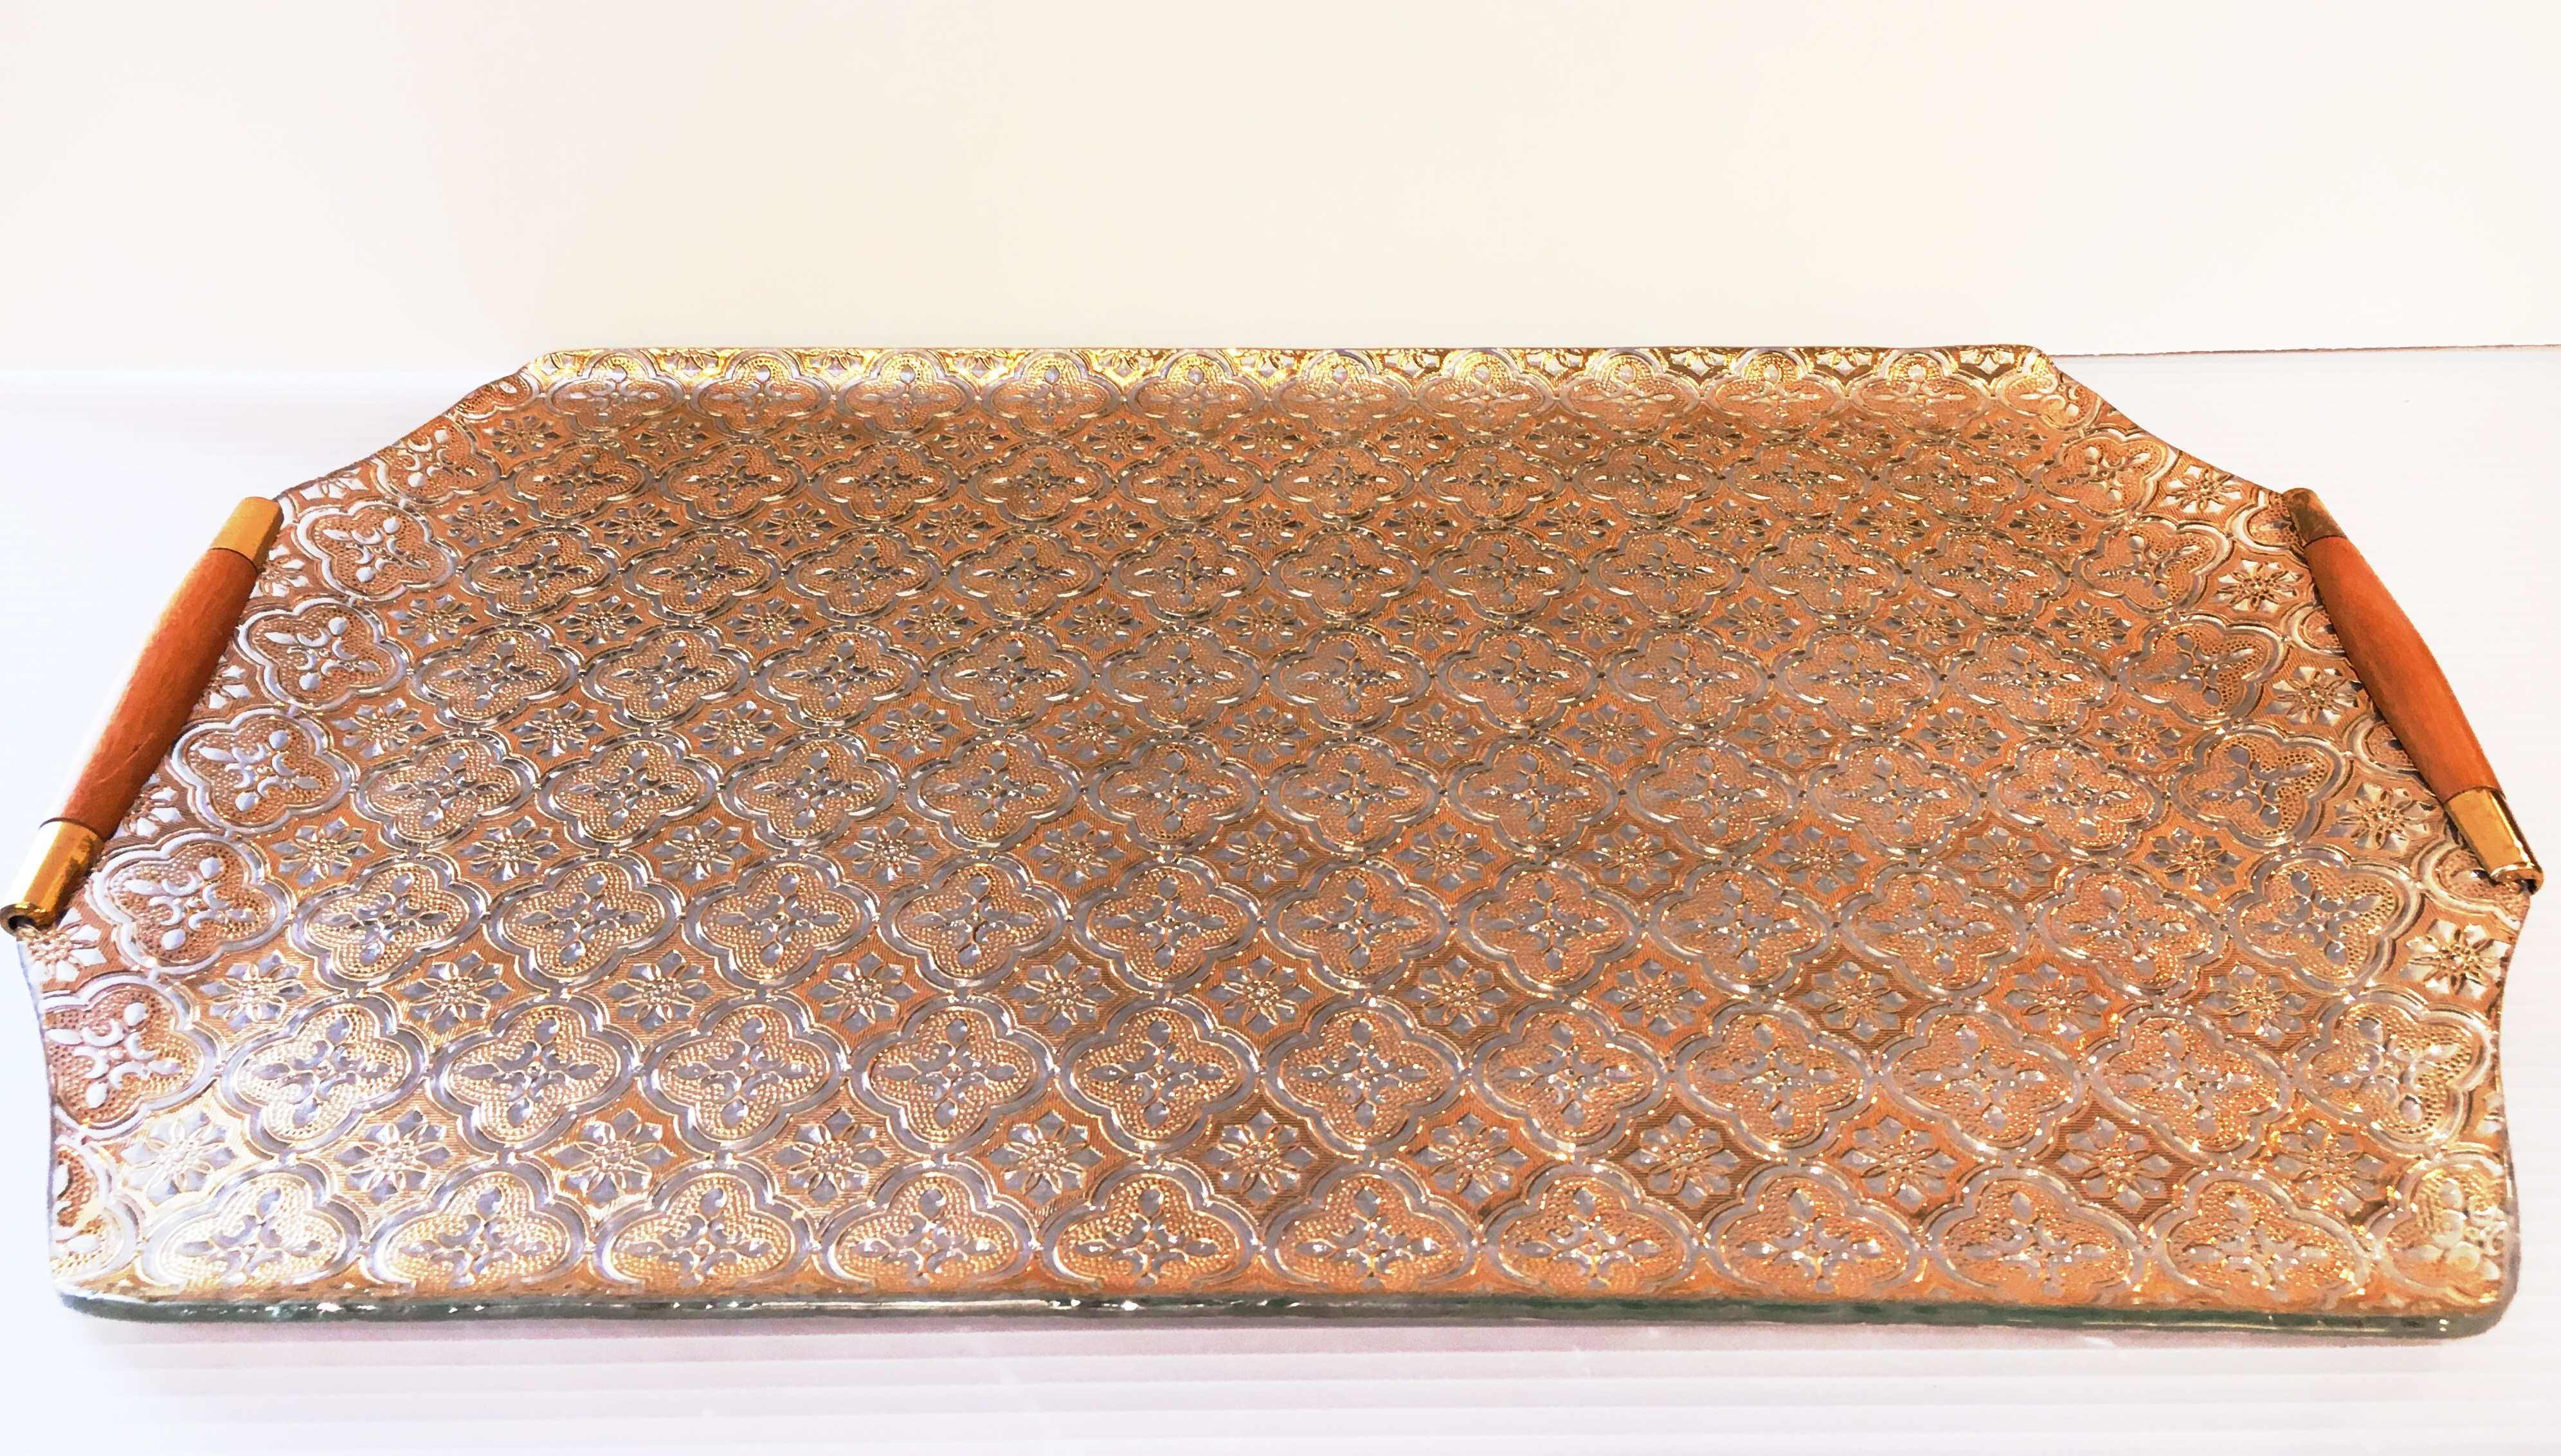 SHIPPING CHARGE Georges Briard Embossed Glass & Gold Drinks Tray with Walnut Handles